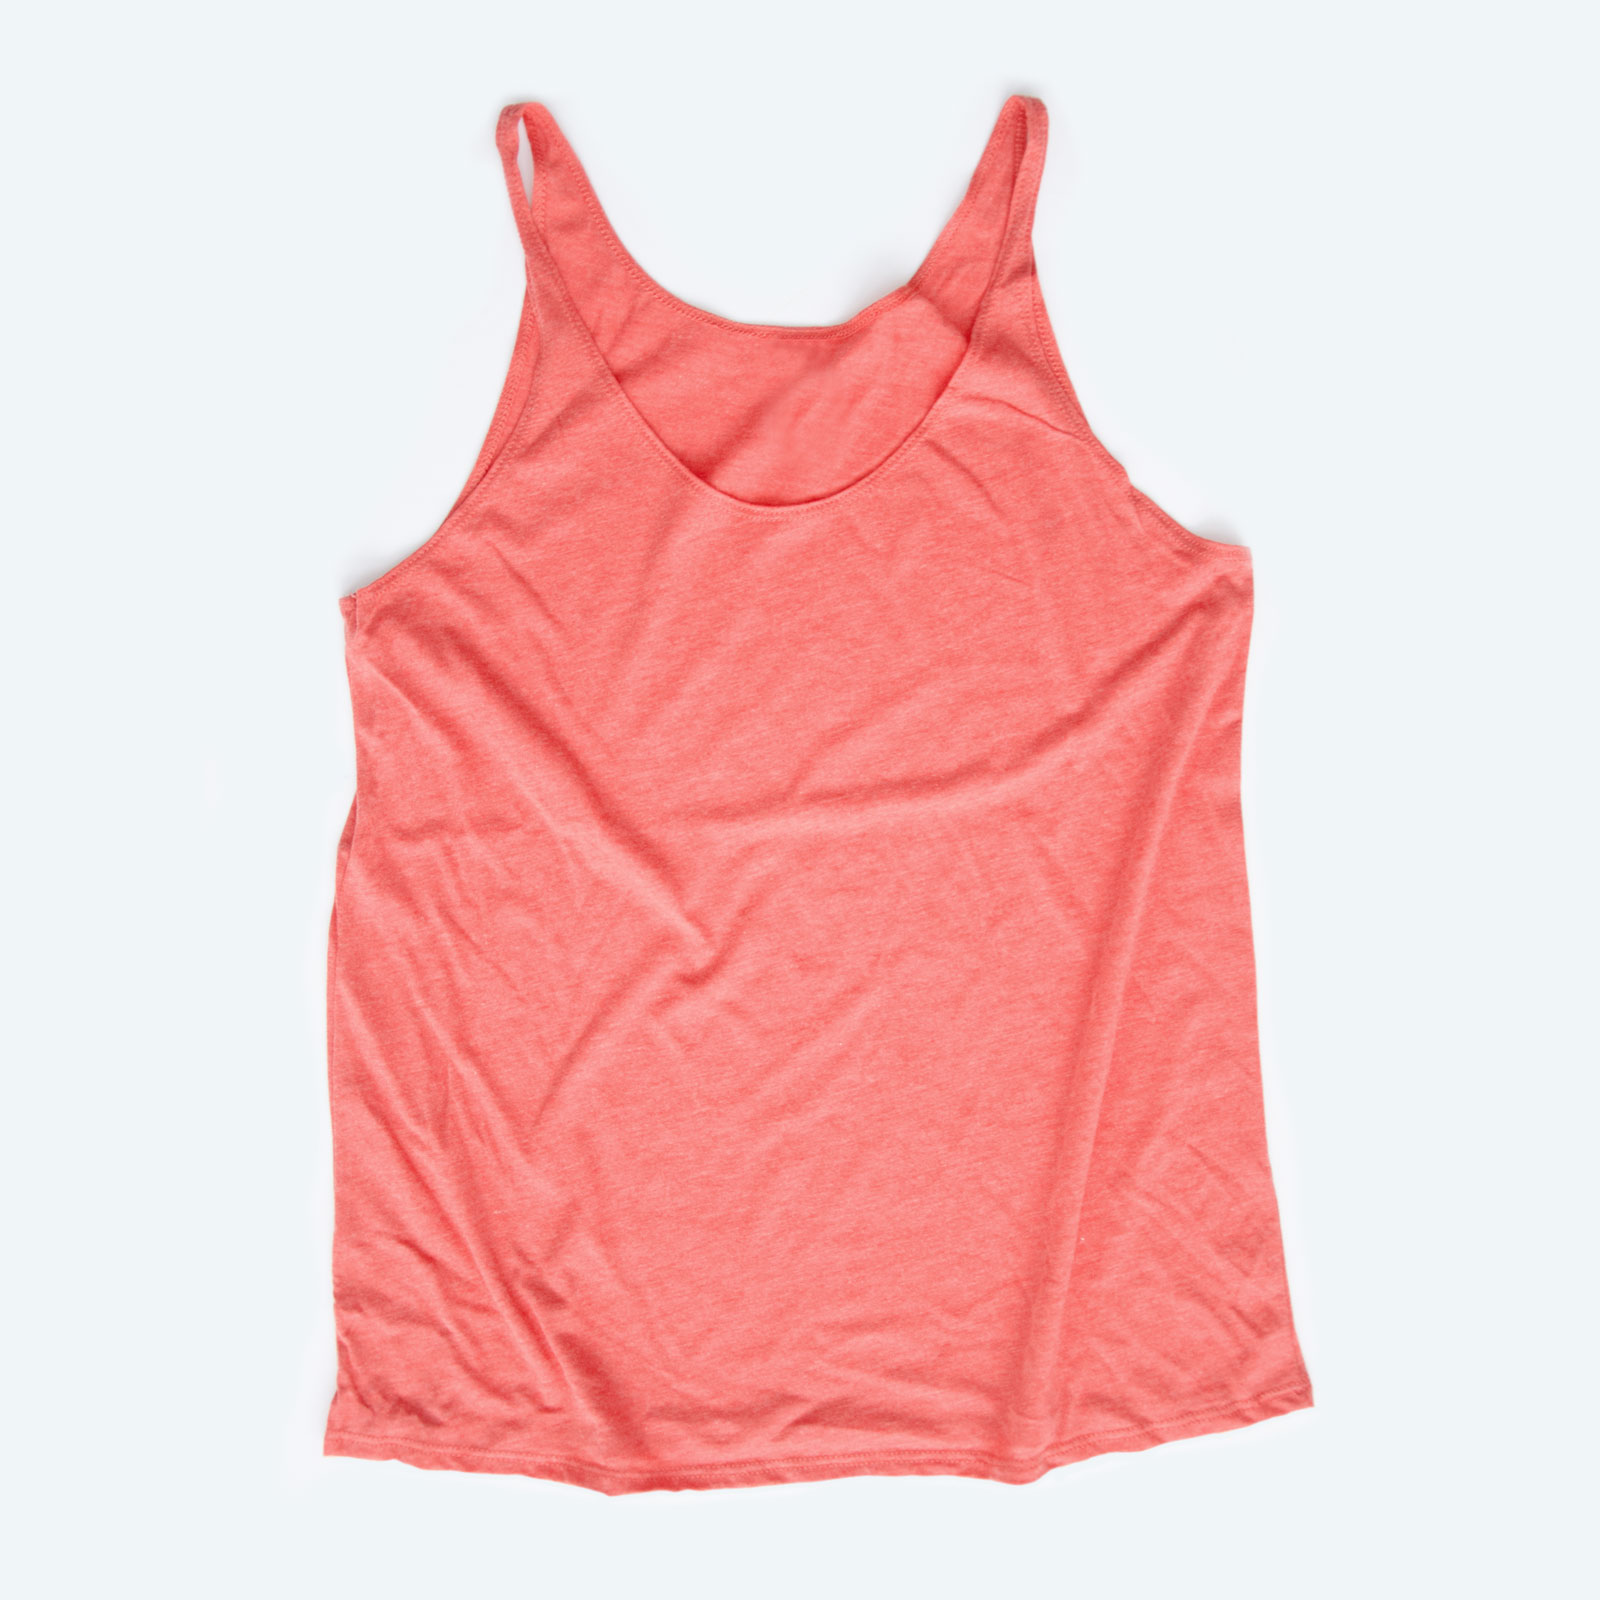 A slouchy tank top is a great shirt to sell online.